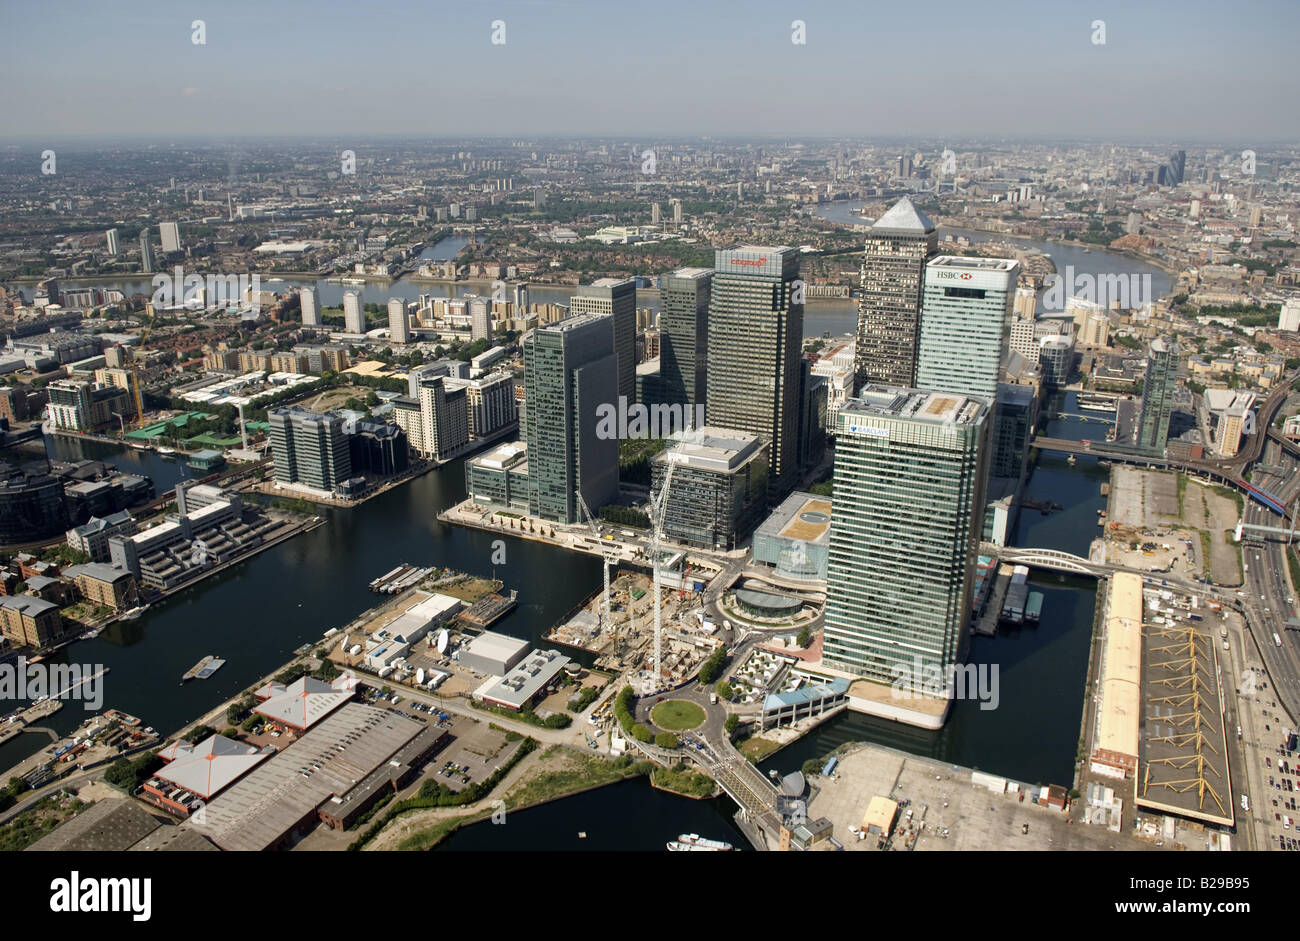 Canary Wharf Date 12 03 2008 Ref ZB648 111149 0016 COMPULSORY CREDIT World Pictures Photoshot - Stock Image